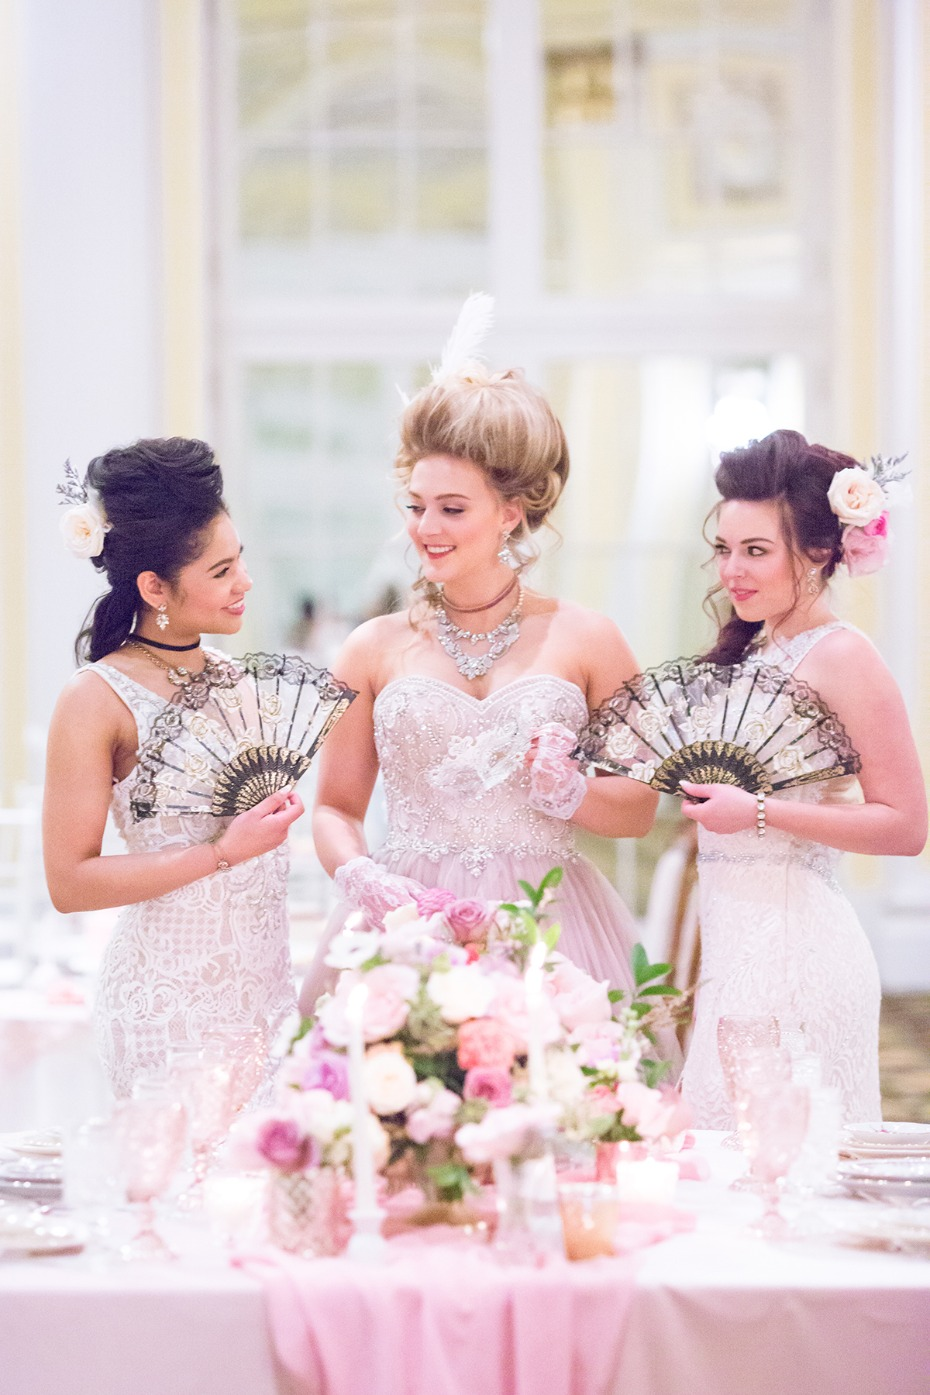 Marie Antoinette themed wedding ideas